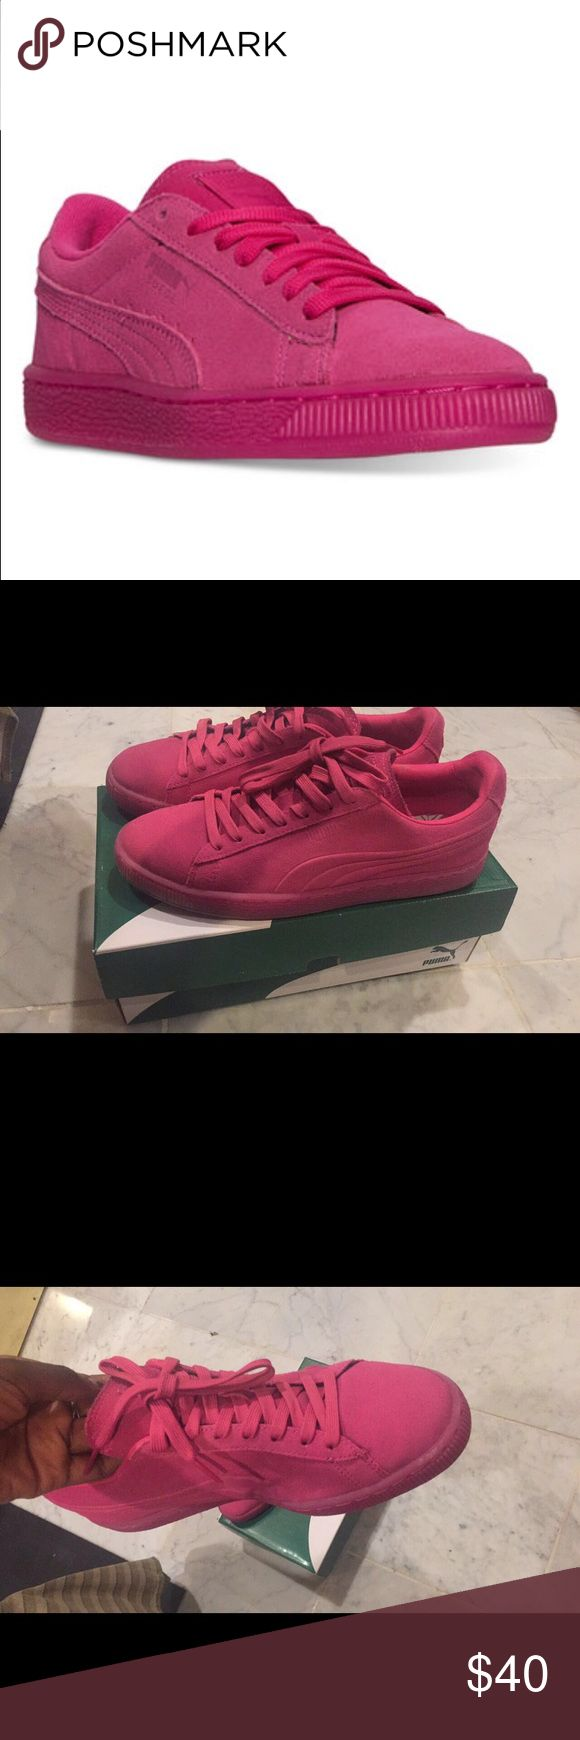 Puma Sued Embossed Iced Fluo Sneakers Worn once in great condition fits a women's size 9.5 or 10!! PUMA styling with modern enhancements, the PUMA Classic Suede can be dressed up or down for daily wear. Puma Shoes Sneakers